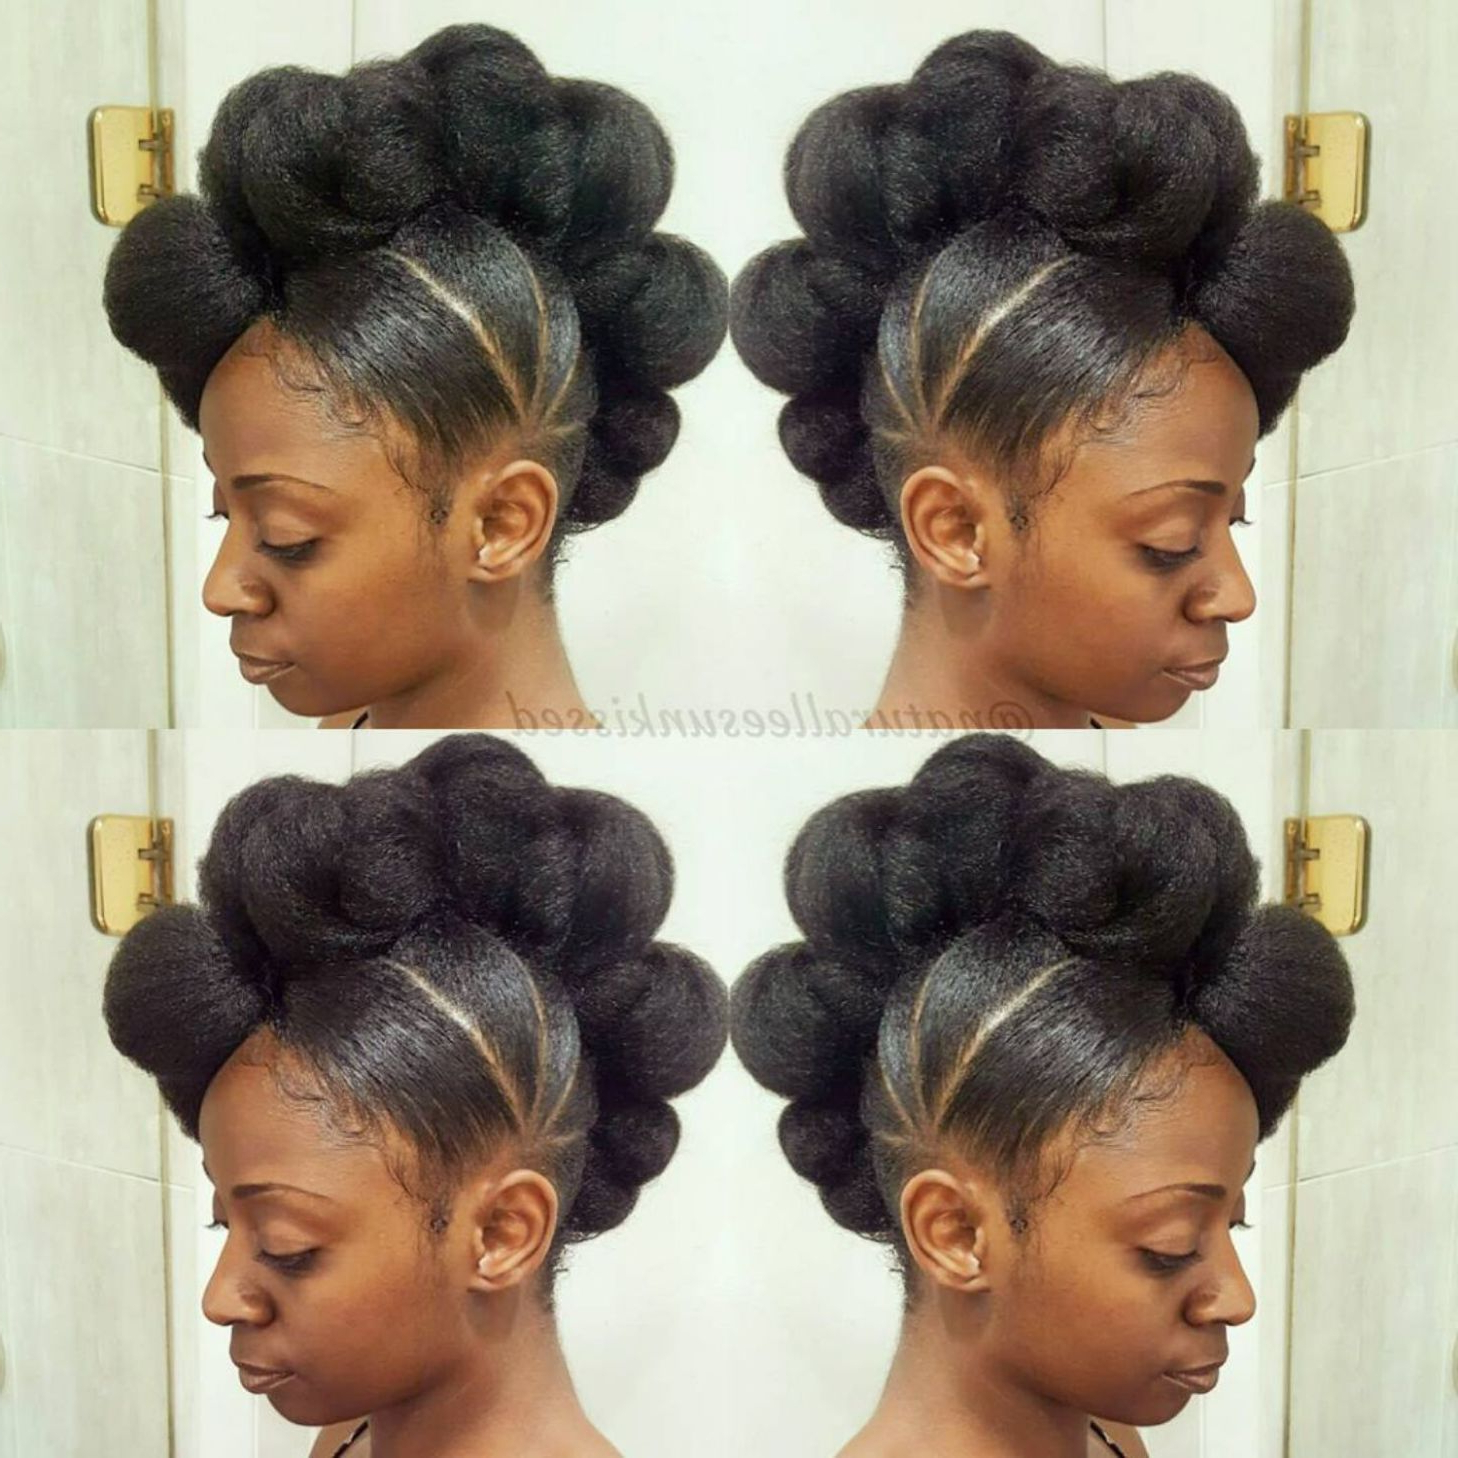 50 Updo Hairstyles For Black Women Ranging From Elegant To Eccentric Within Preferred Cool Mohawk Updo Hairstyles (View 3 of 20)